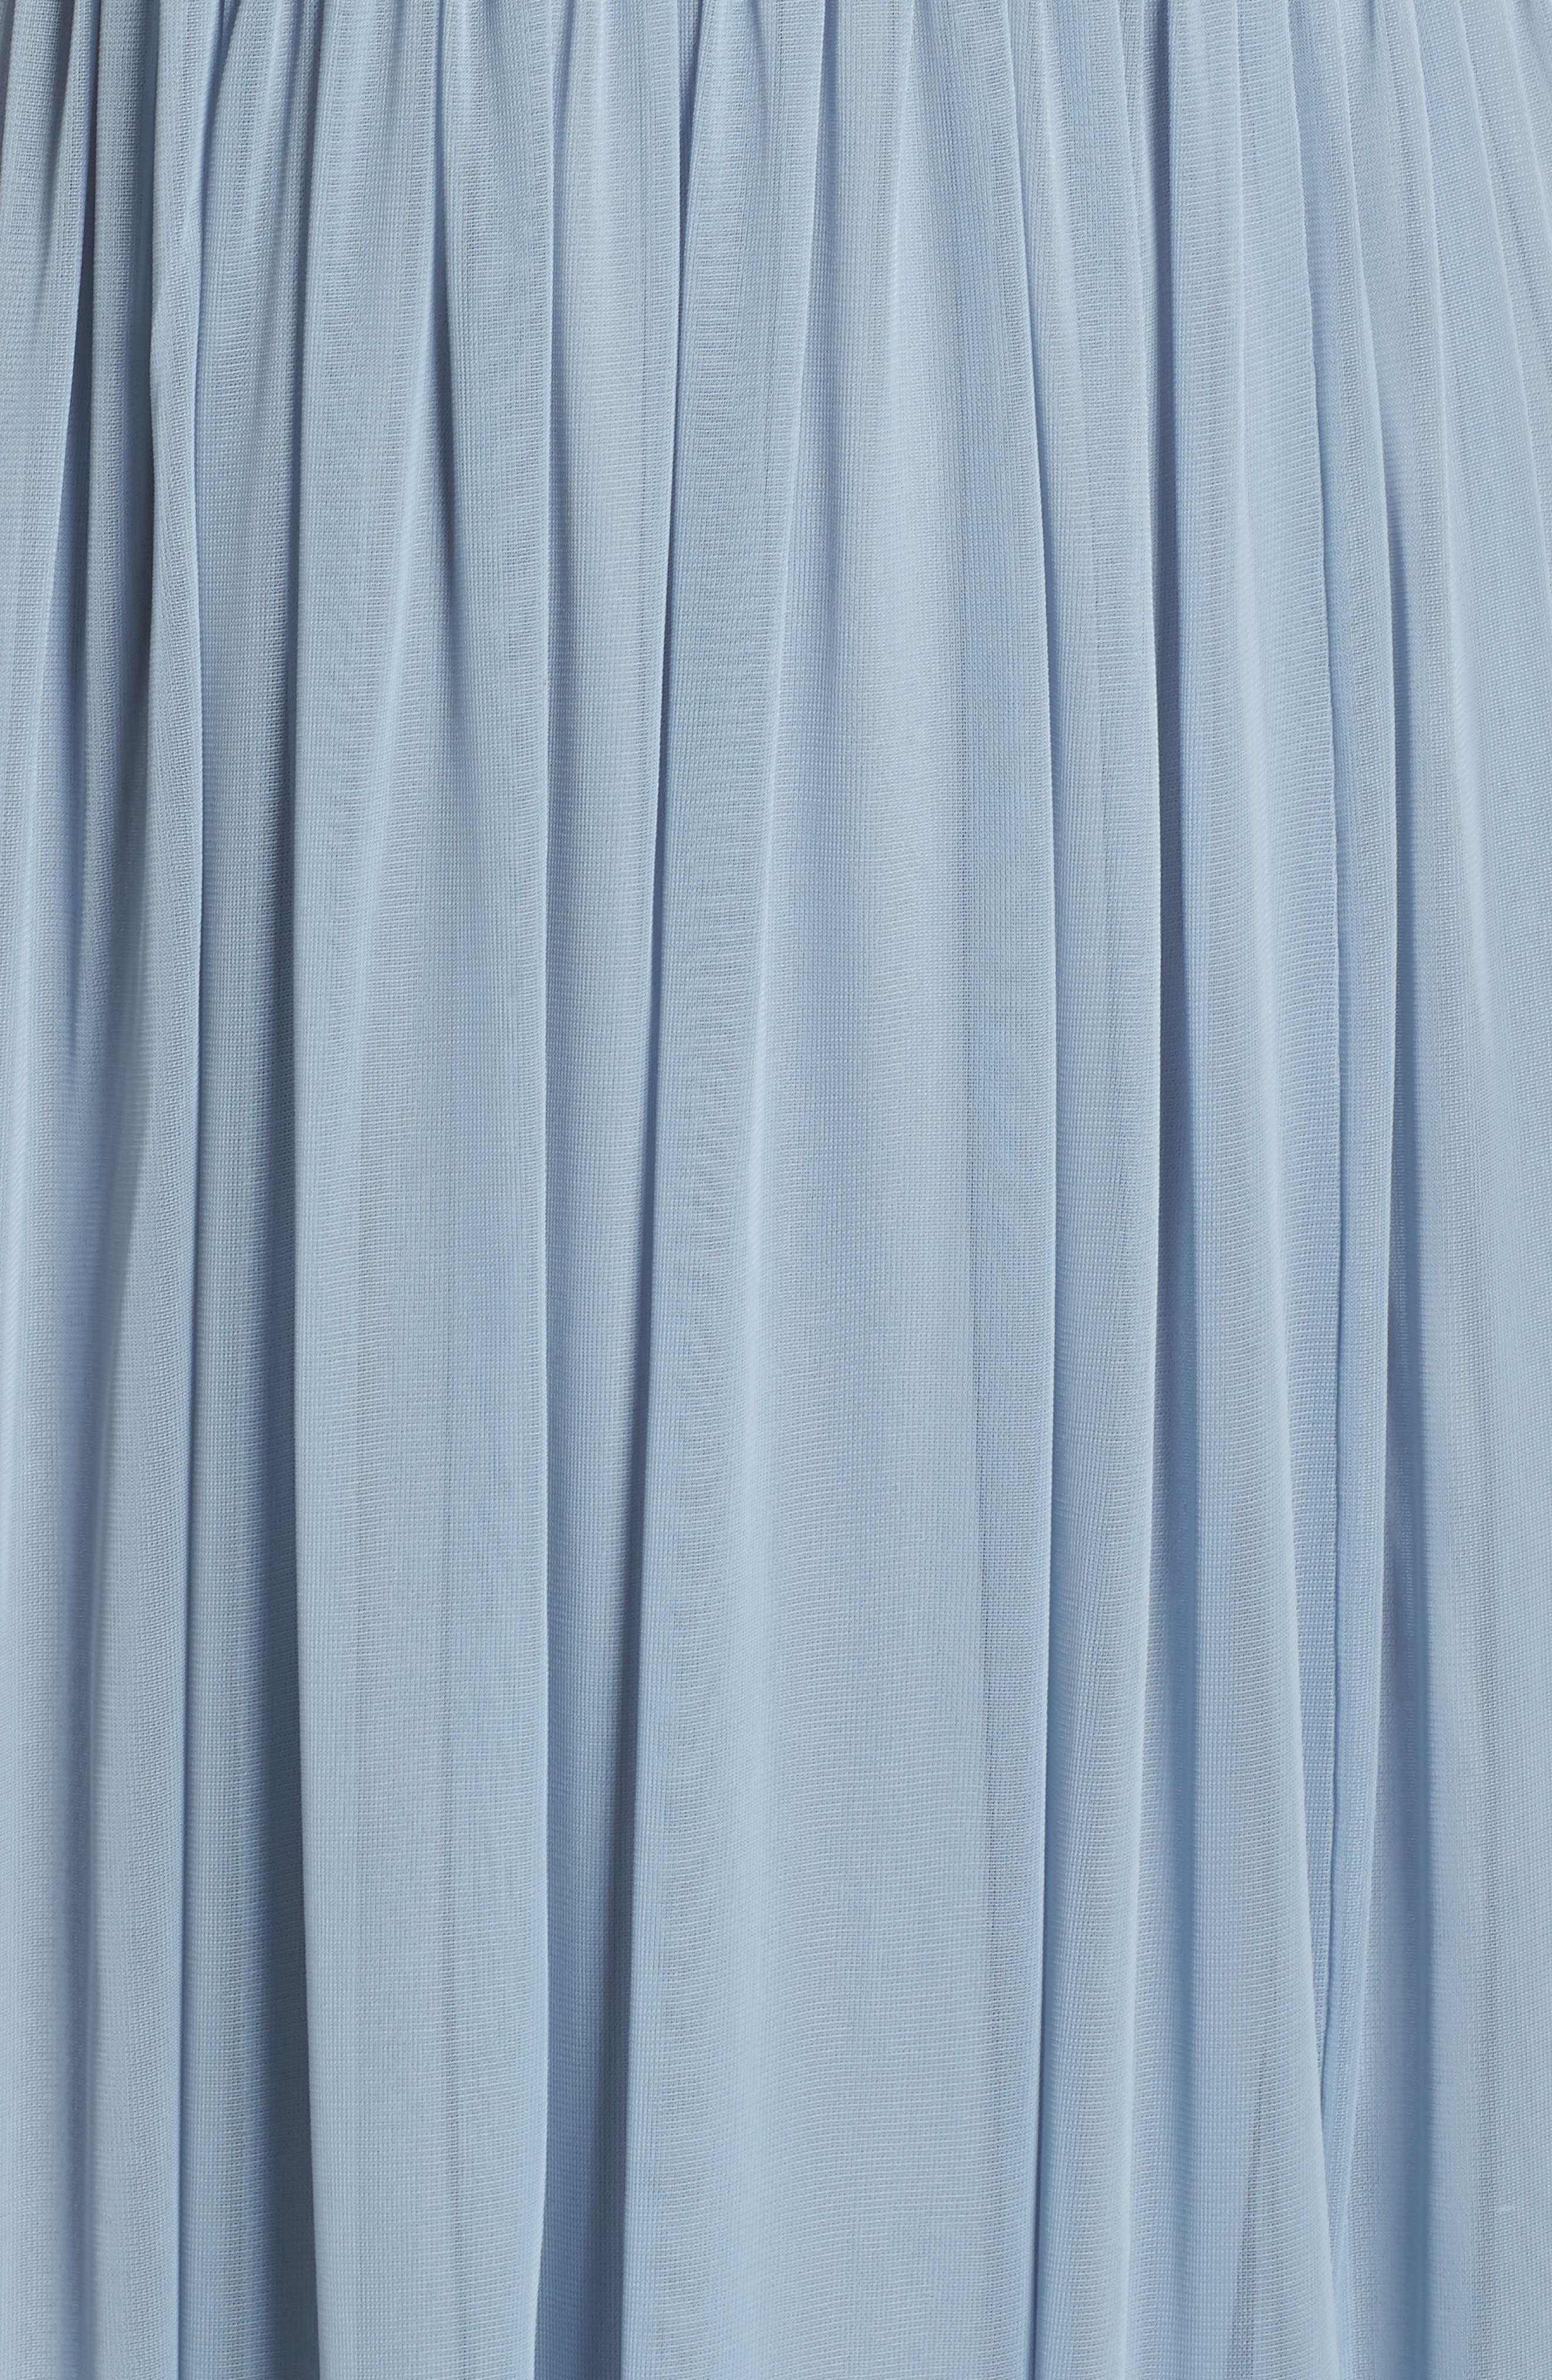 Shirred Chiffon Gown,                             Alternate thumbnail 5, color,                             450